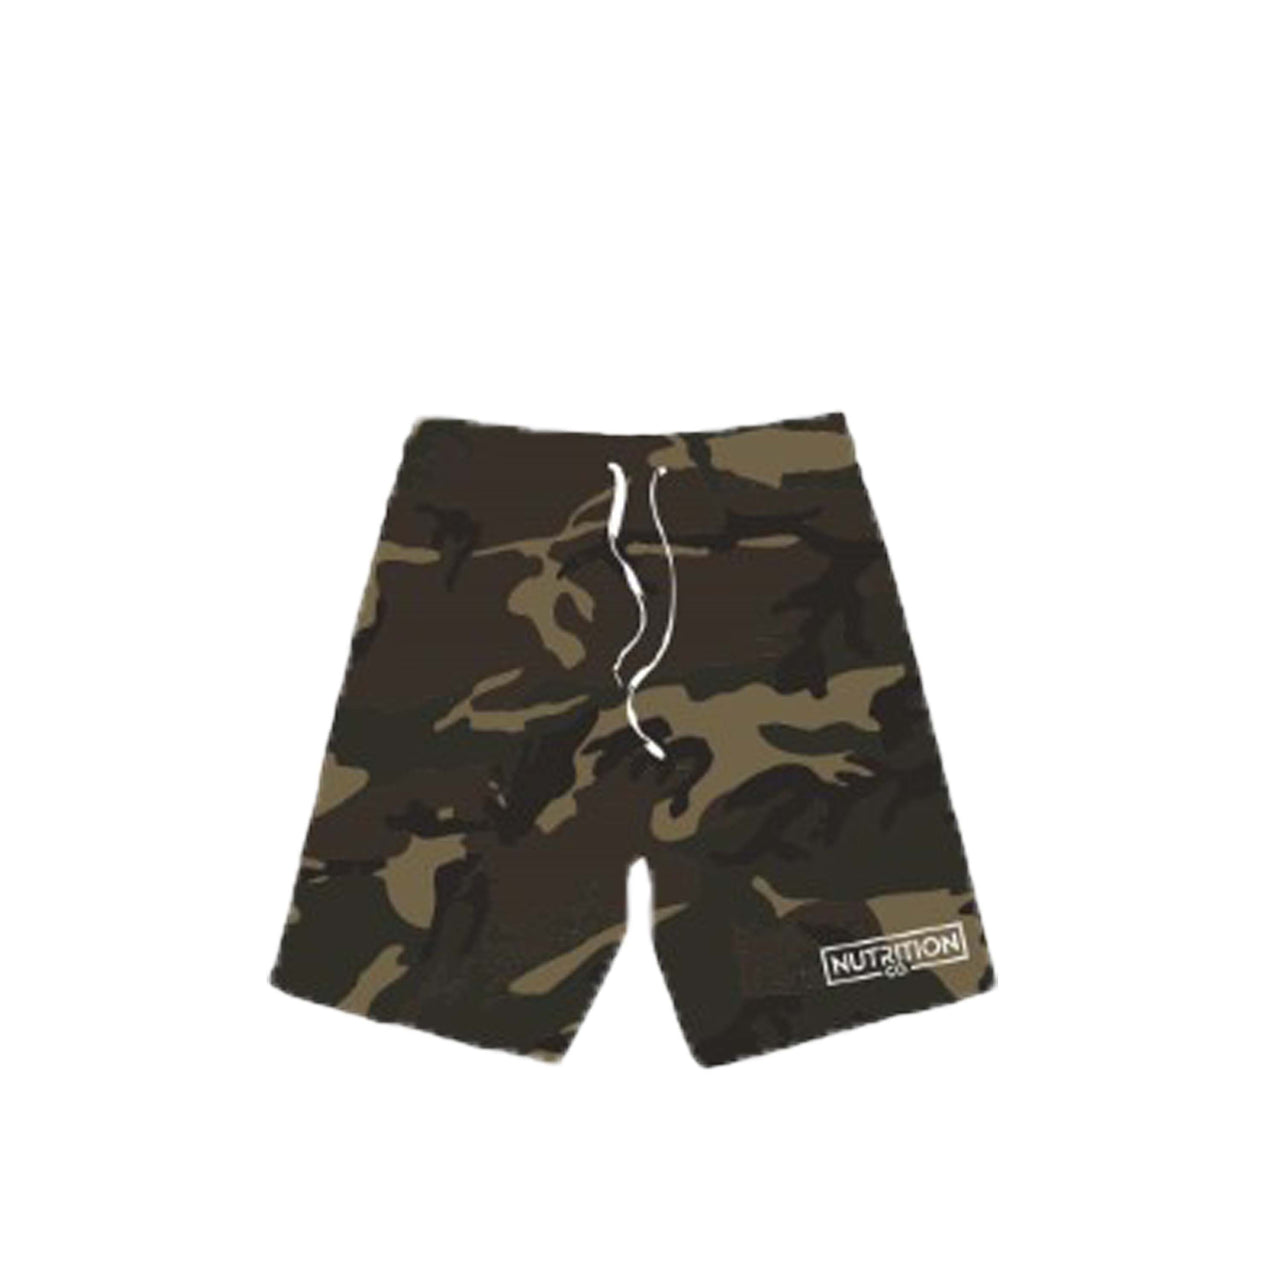 Nutrition Co Shorts Camo